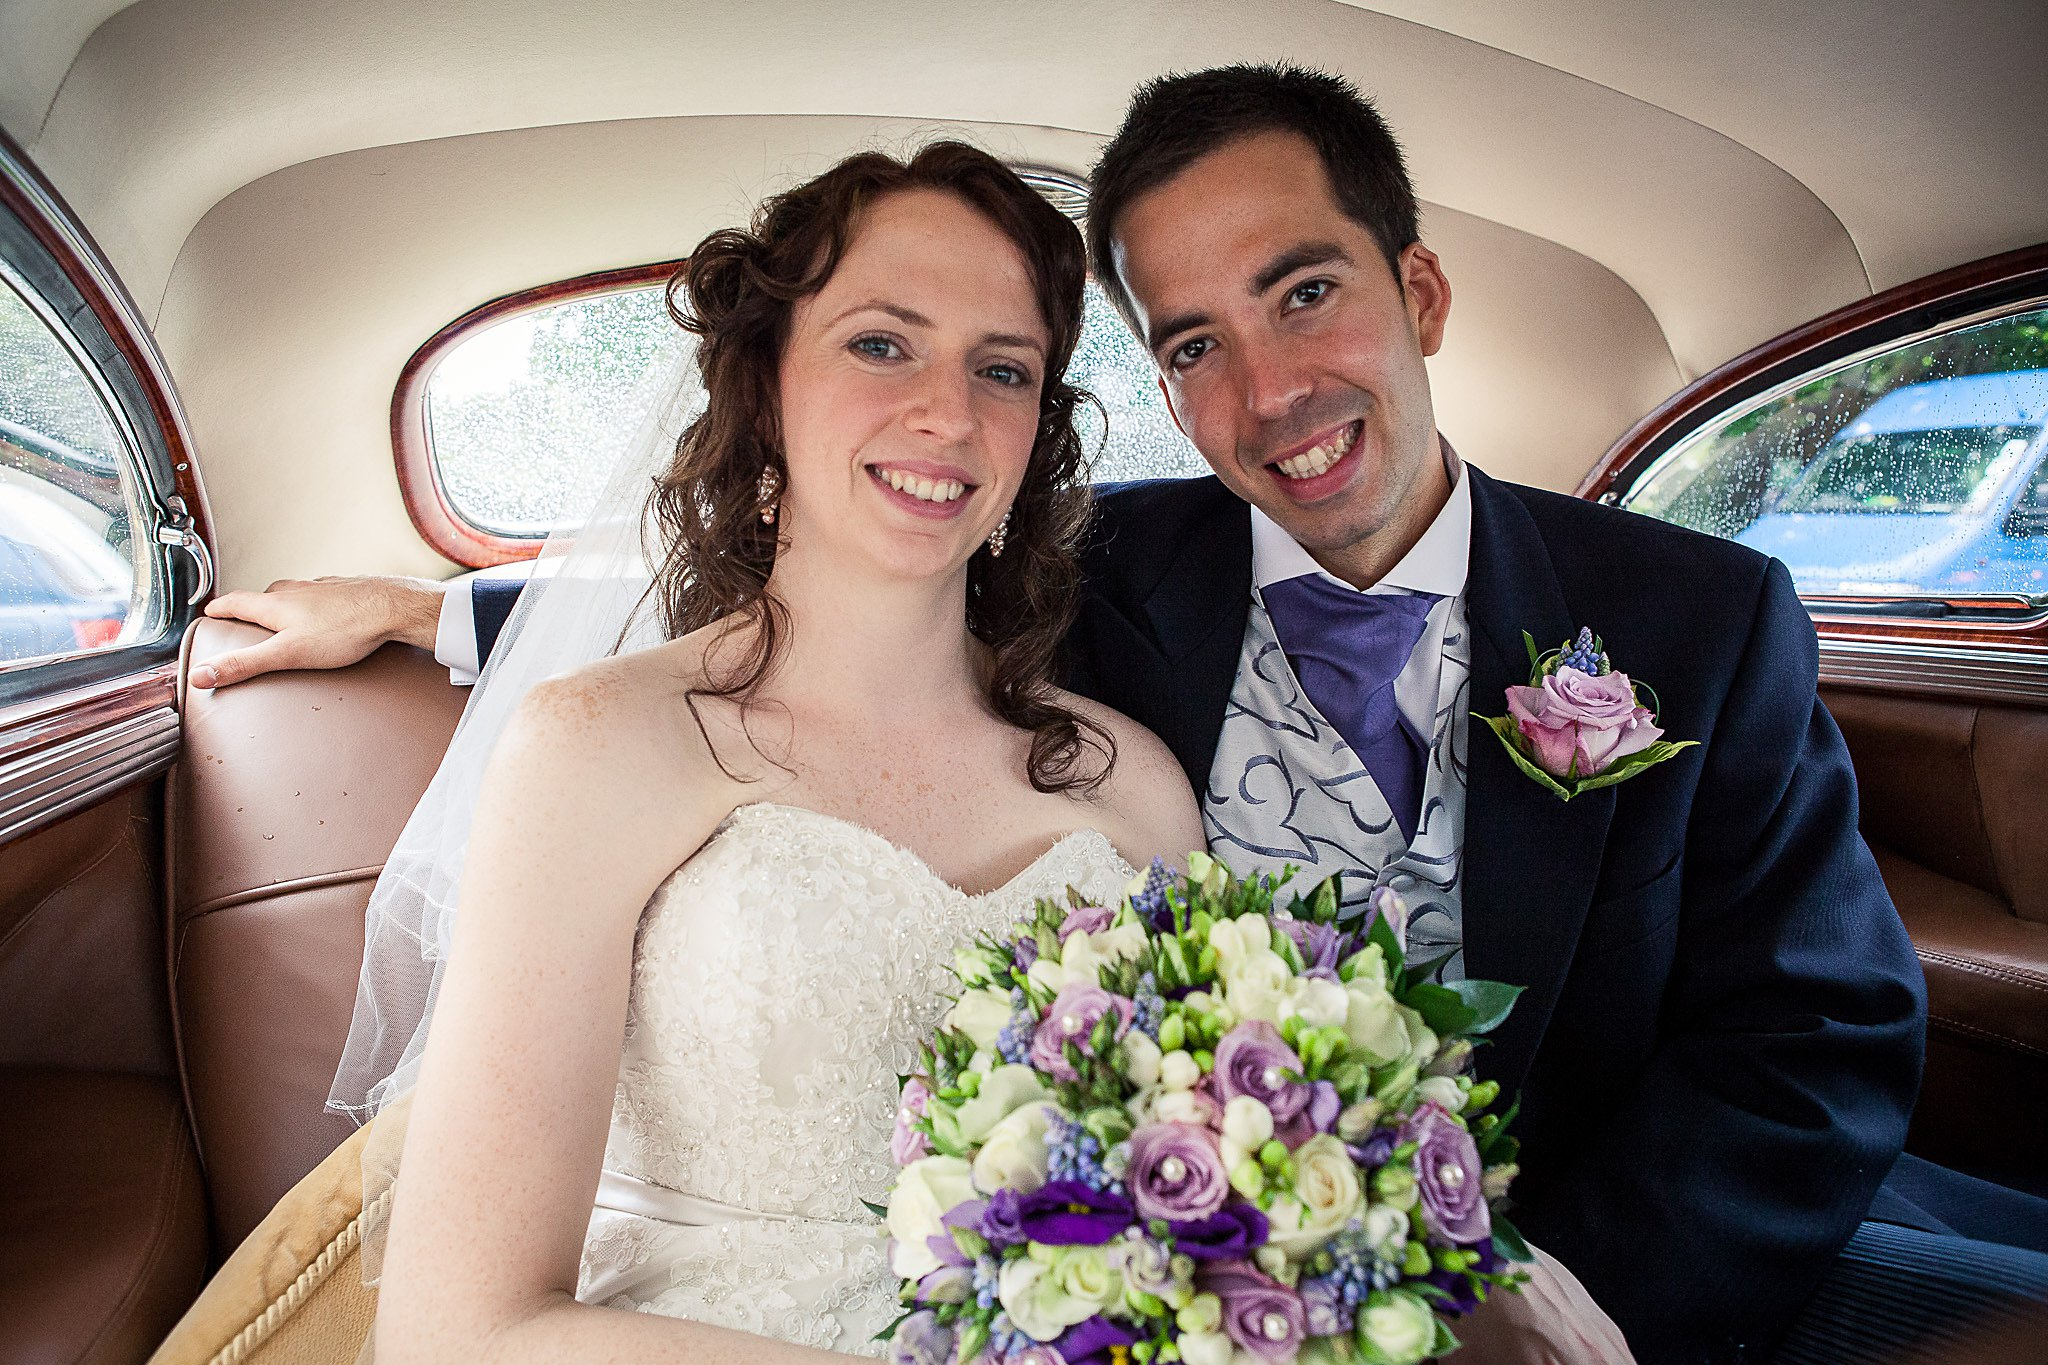 Couple in wedding car